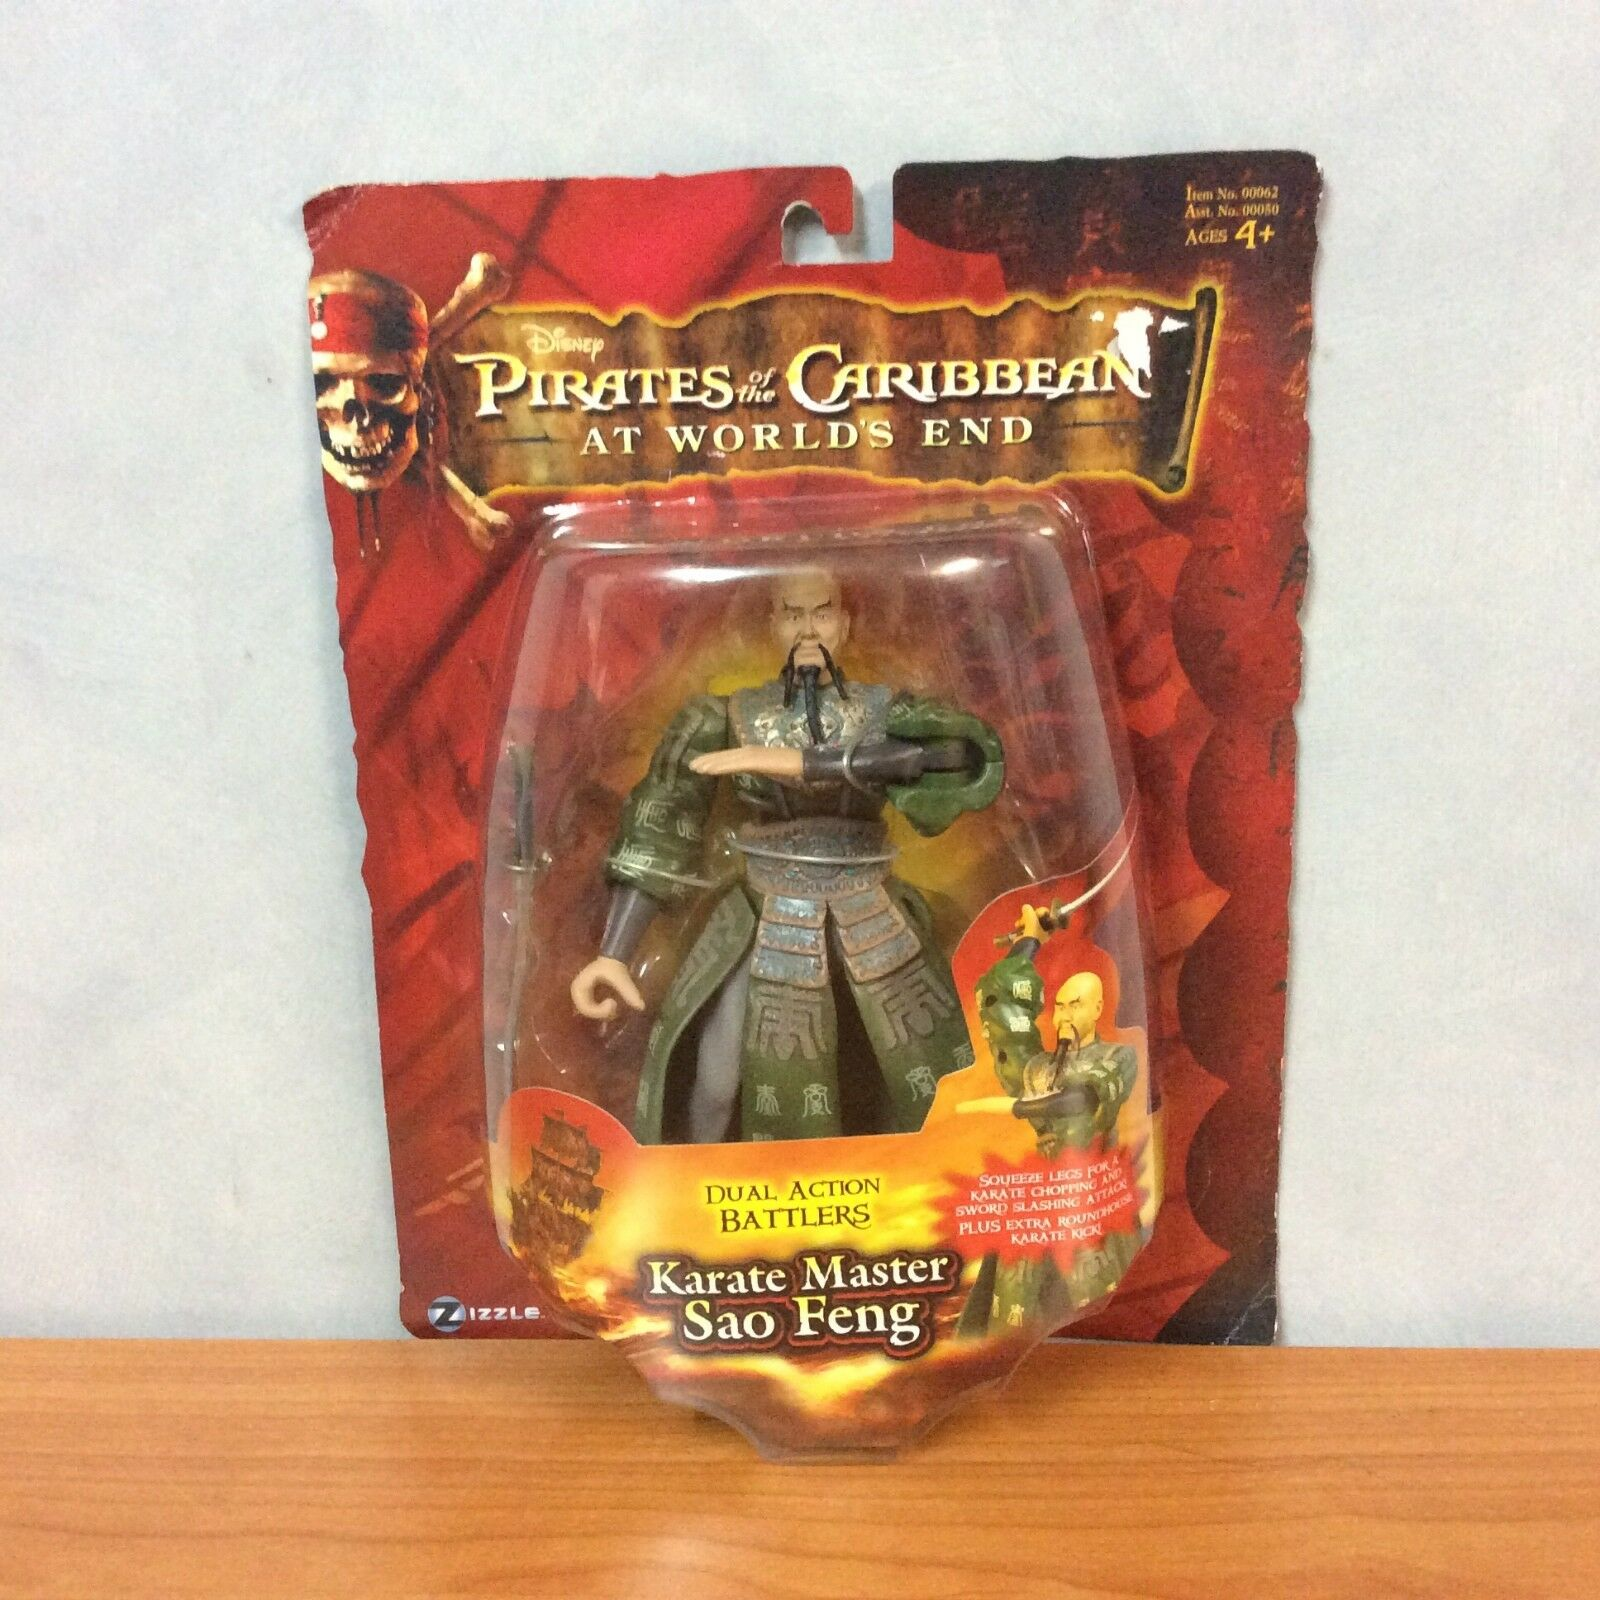 Pirates of the Caribbean at World's End - Karate Master Sao Feng - BNIB